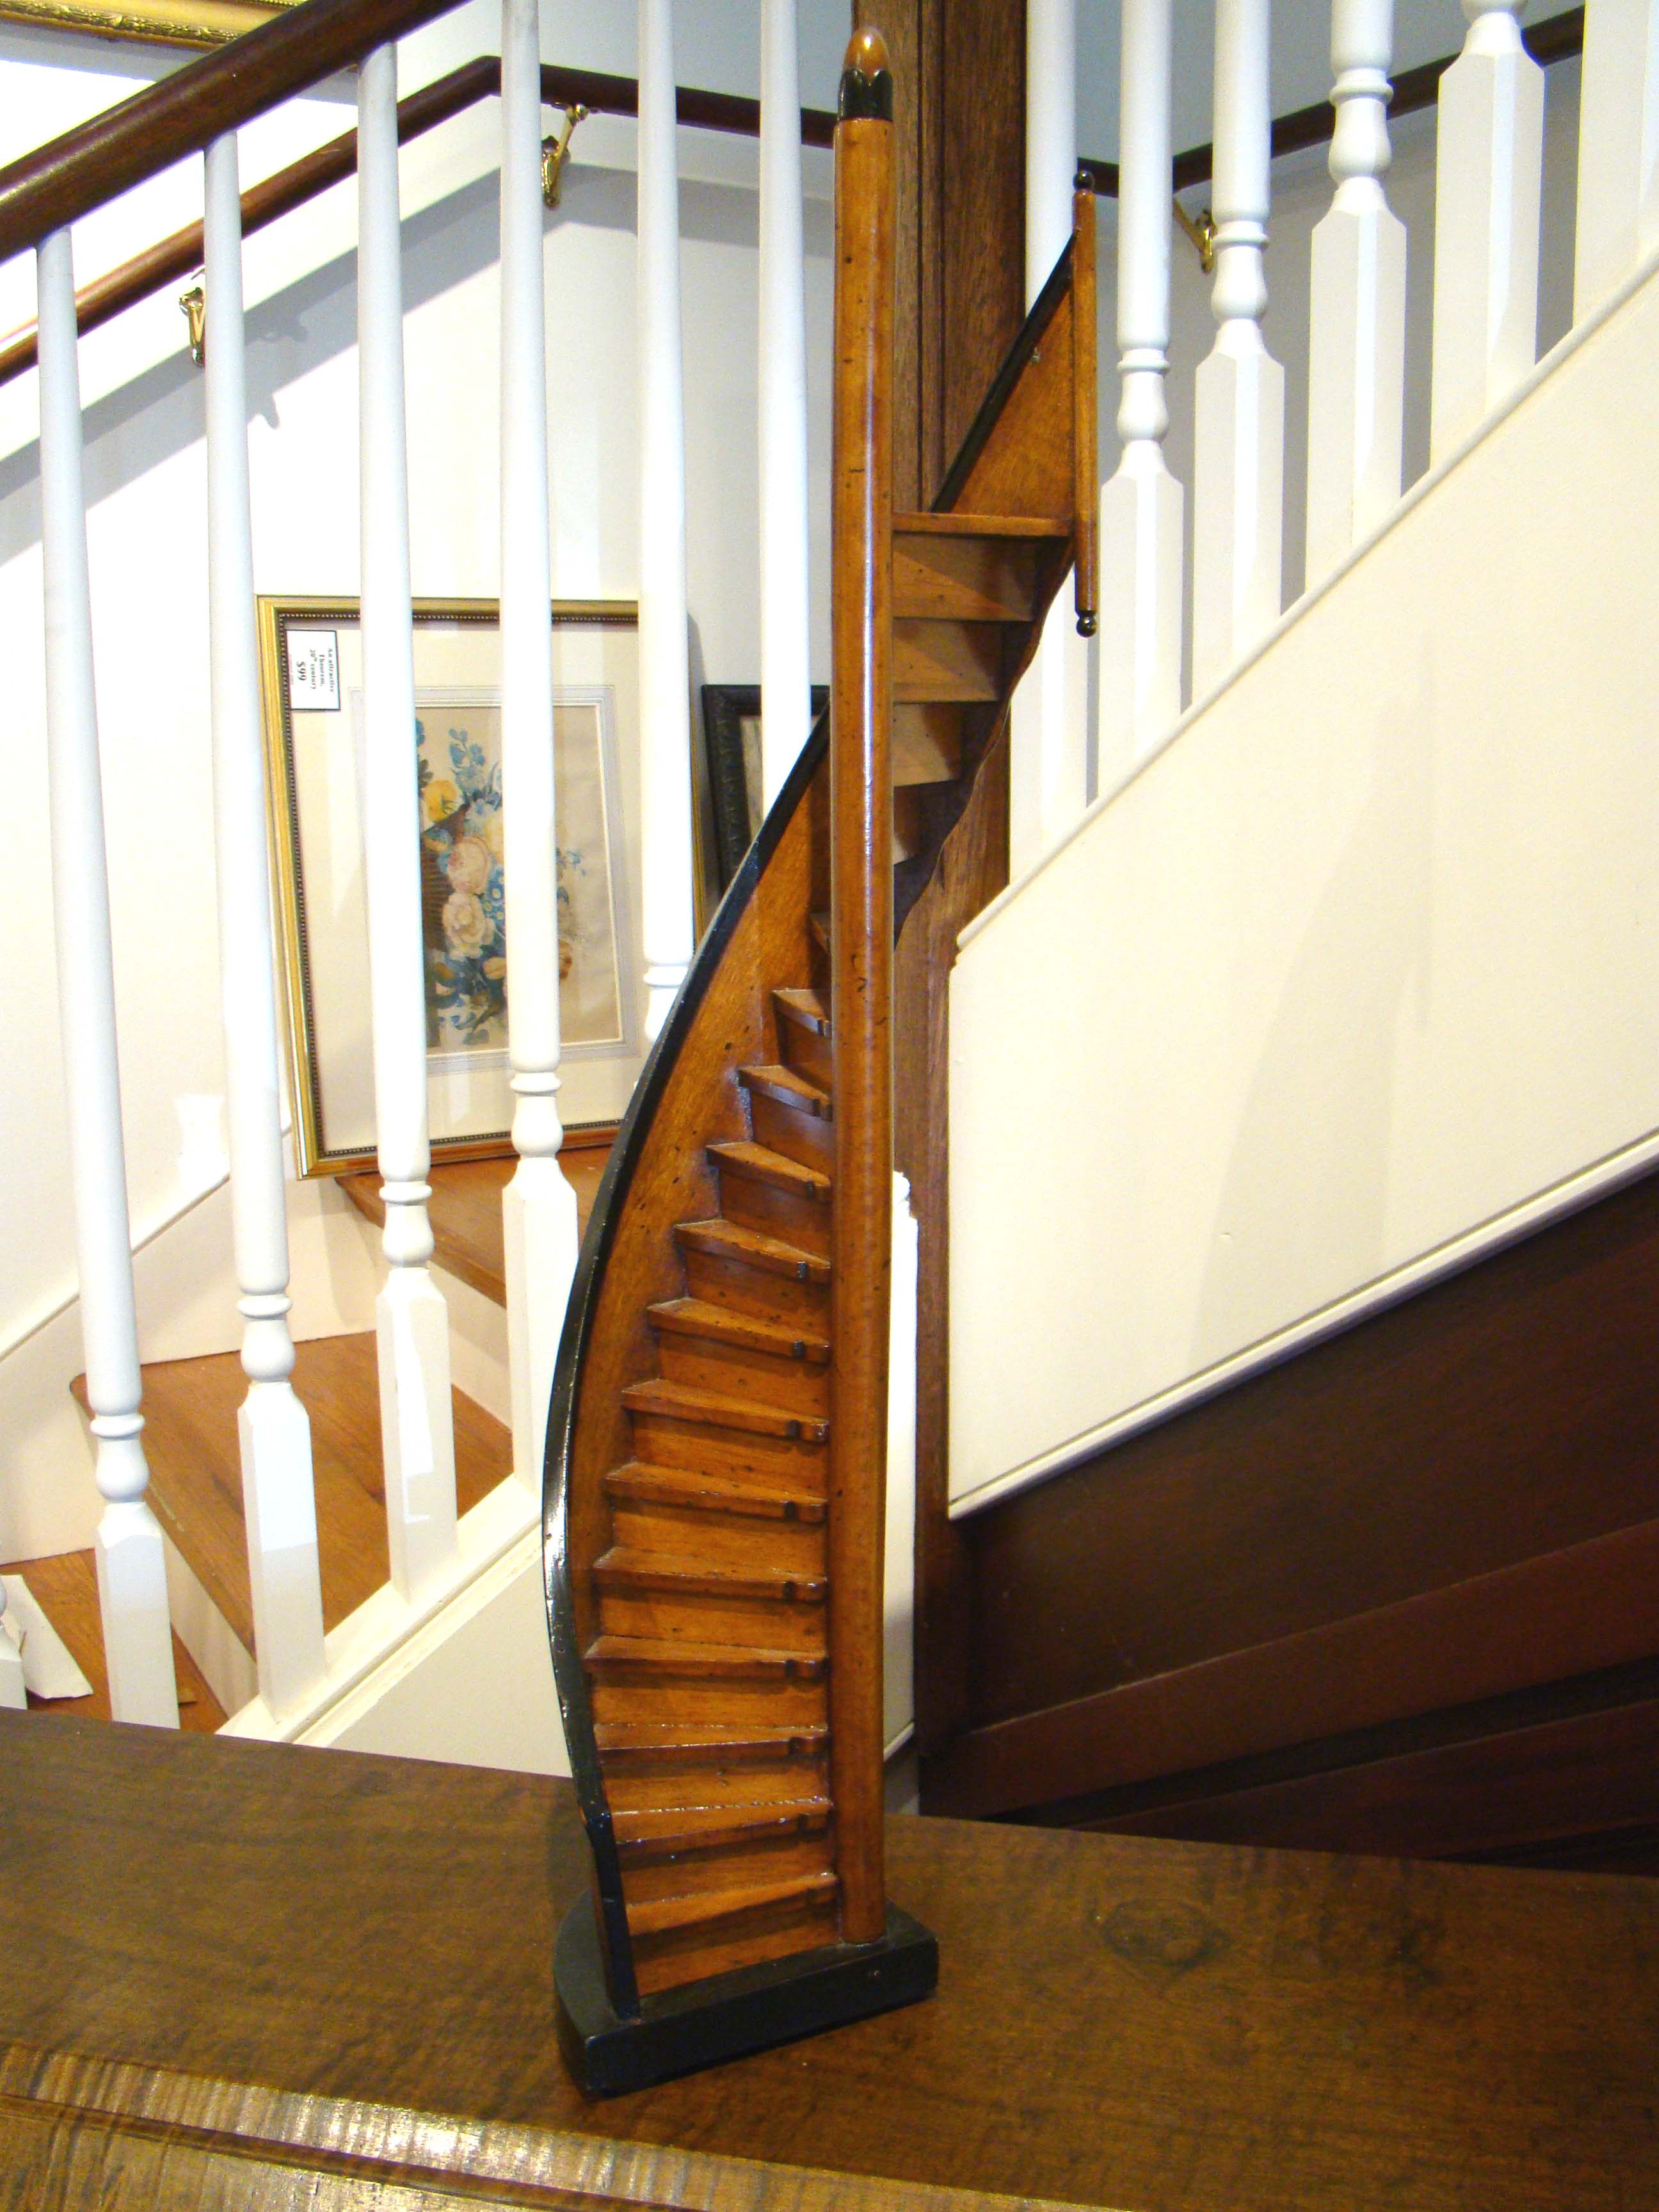 click to view detailed description of A wonderful mid-twentieth century model of a winding staircase